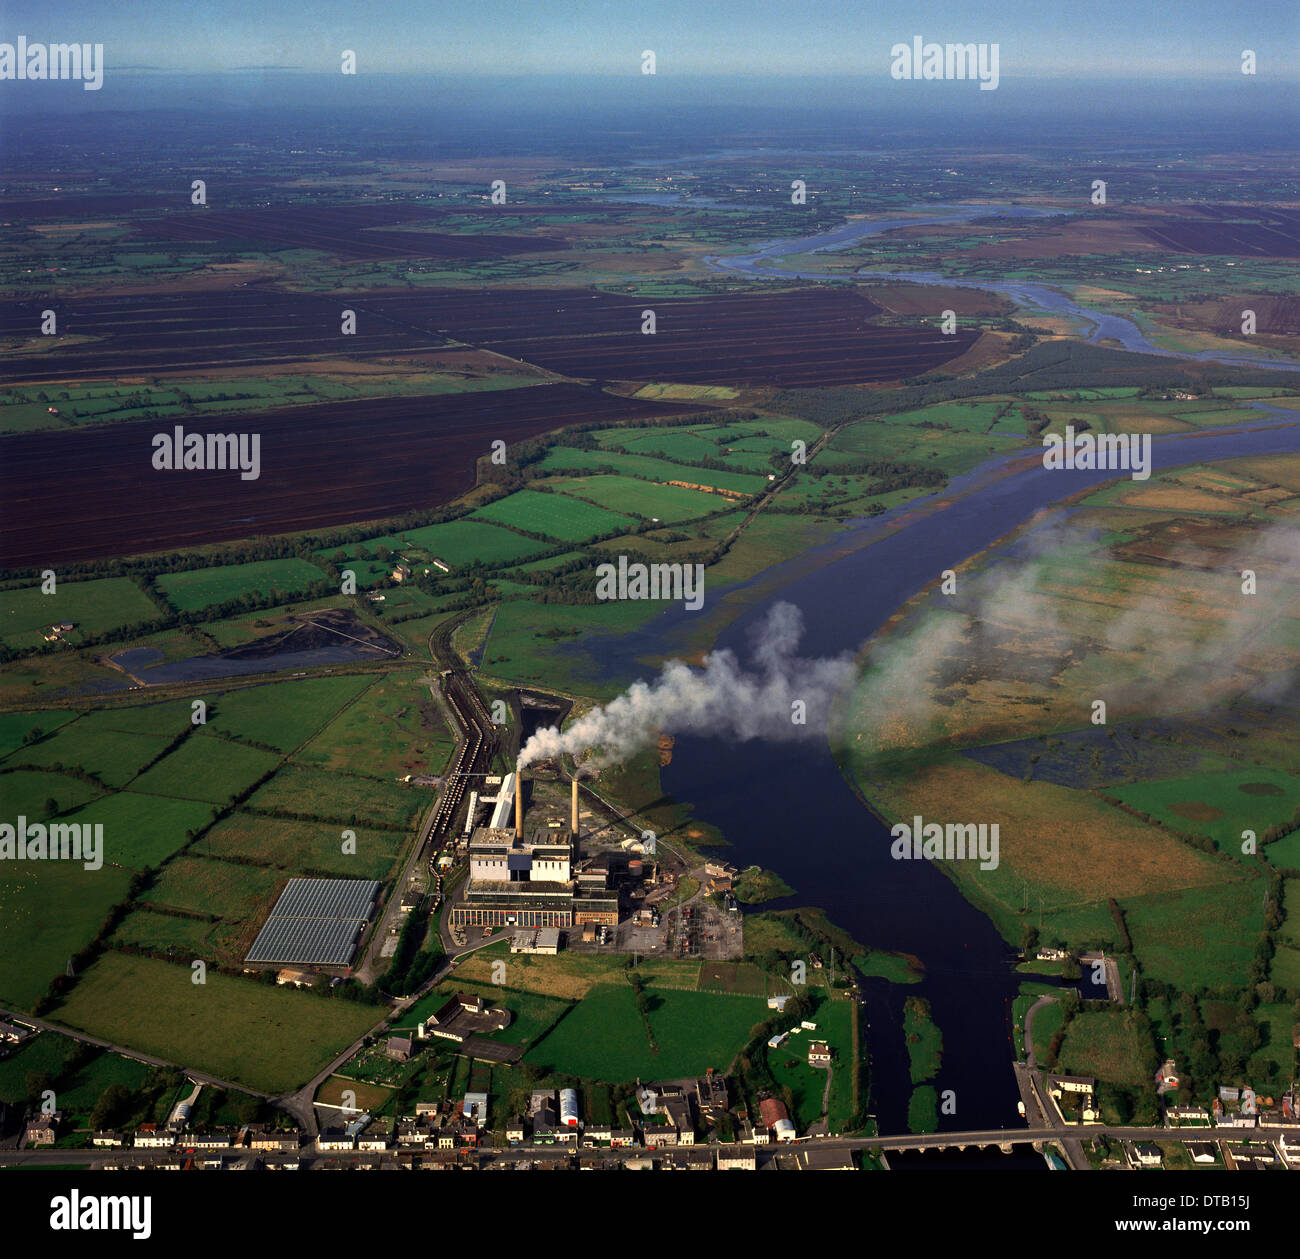 Vintage Image Circa 1970:  Lanesborough Turf (Peat) Burning Power Station, County Longford, Ireland - Stock Image